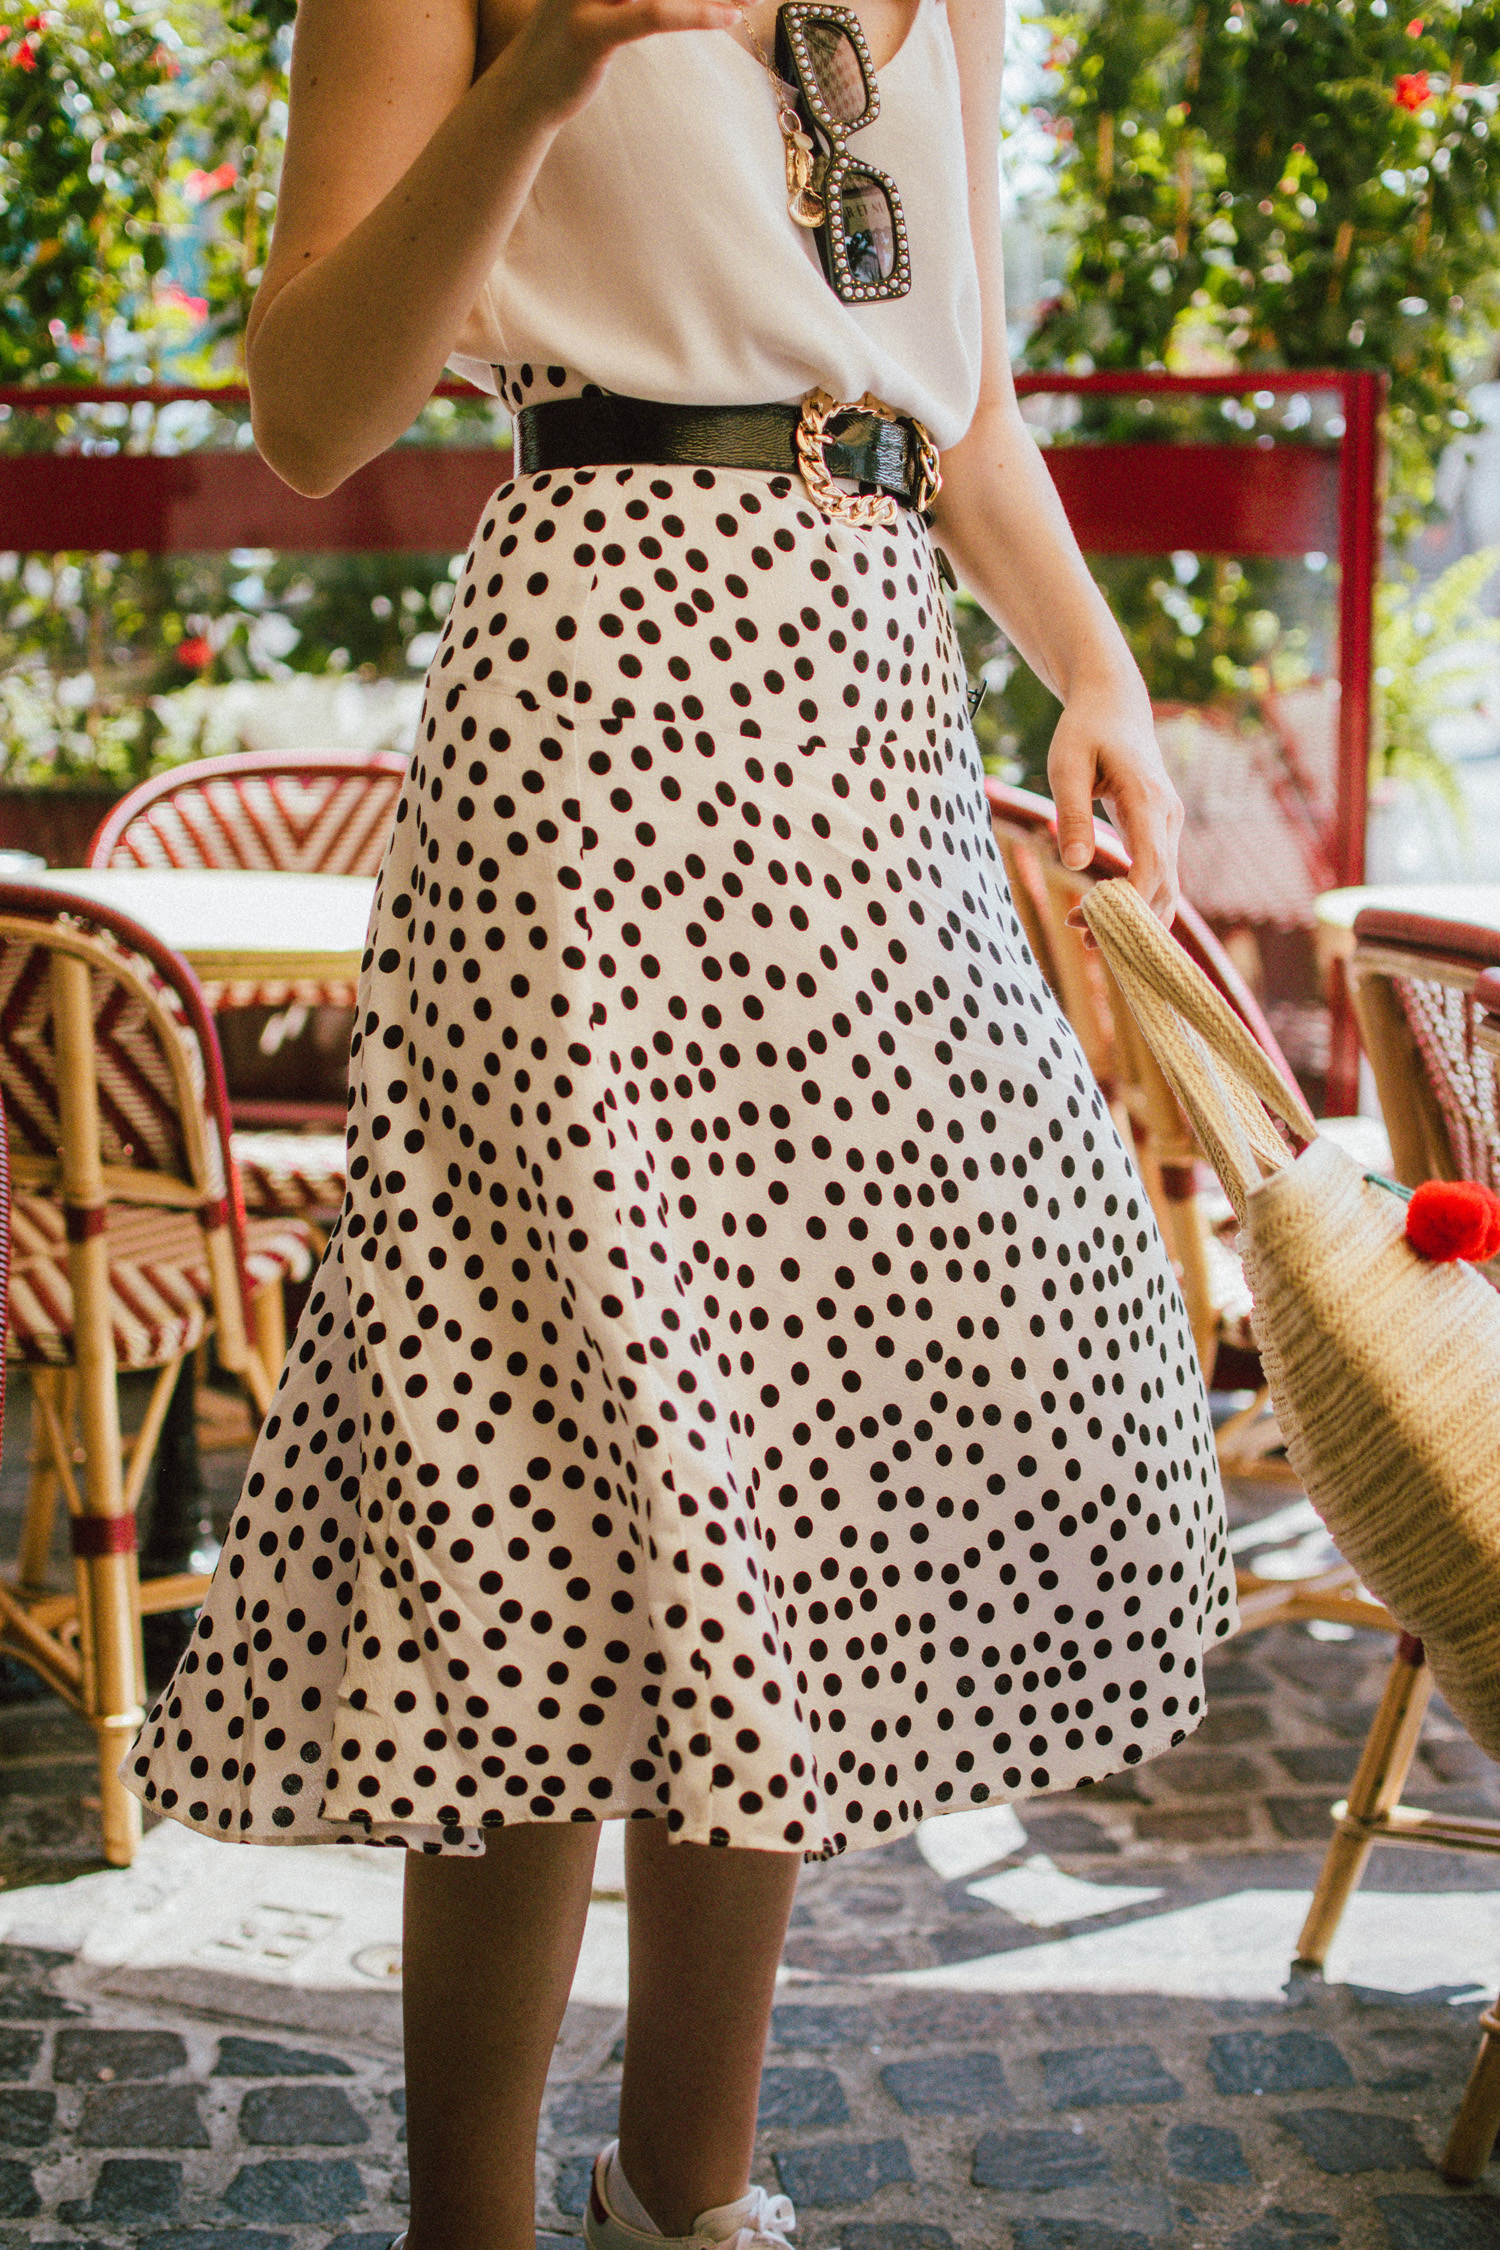 The Easy Breezy Way To Wear A Polka Dot Skirt Couturezilla